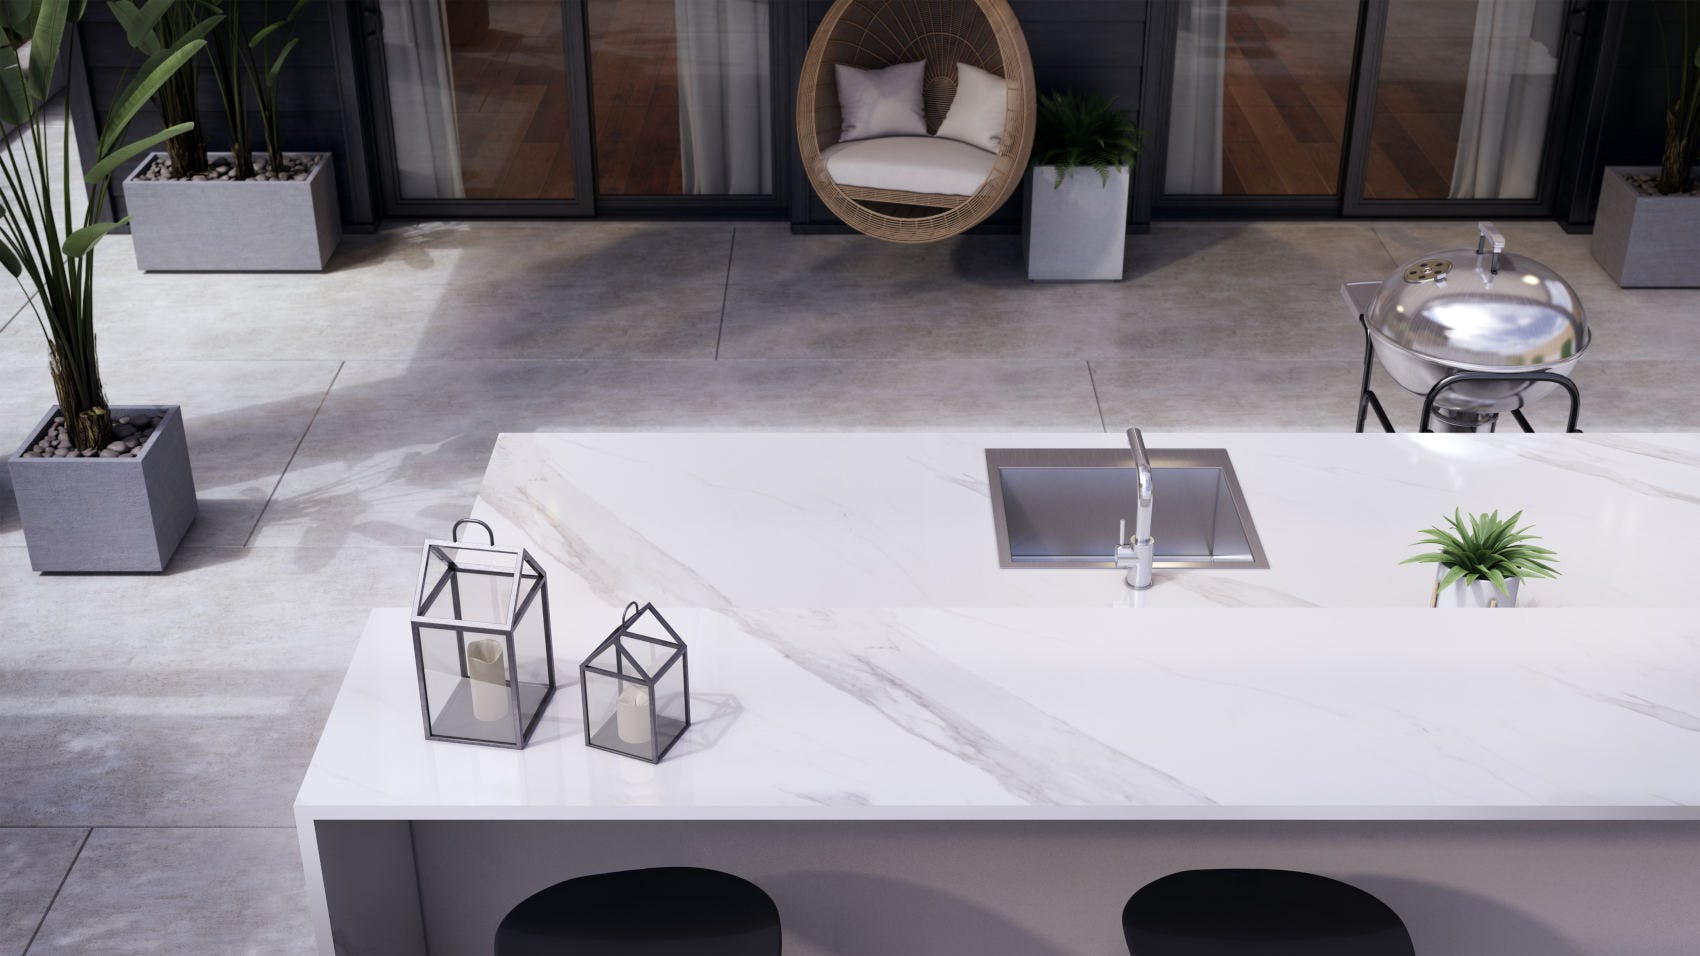 Image of Dekton Outdoor Countertop Olimpo Flooring Keon 1 1 in Nice weather: let's make the most of it! - Cosentino